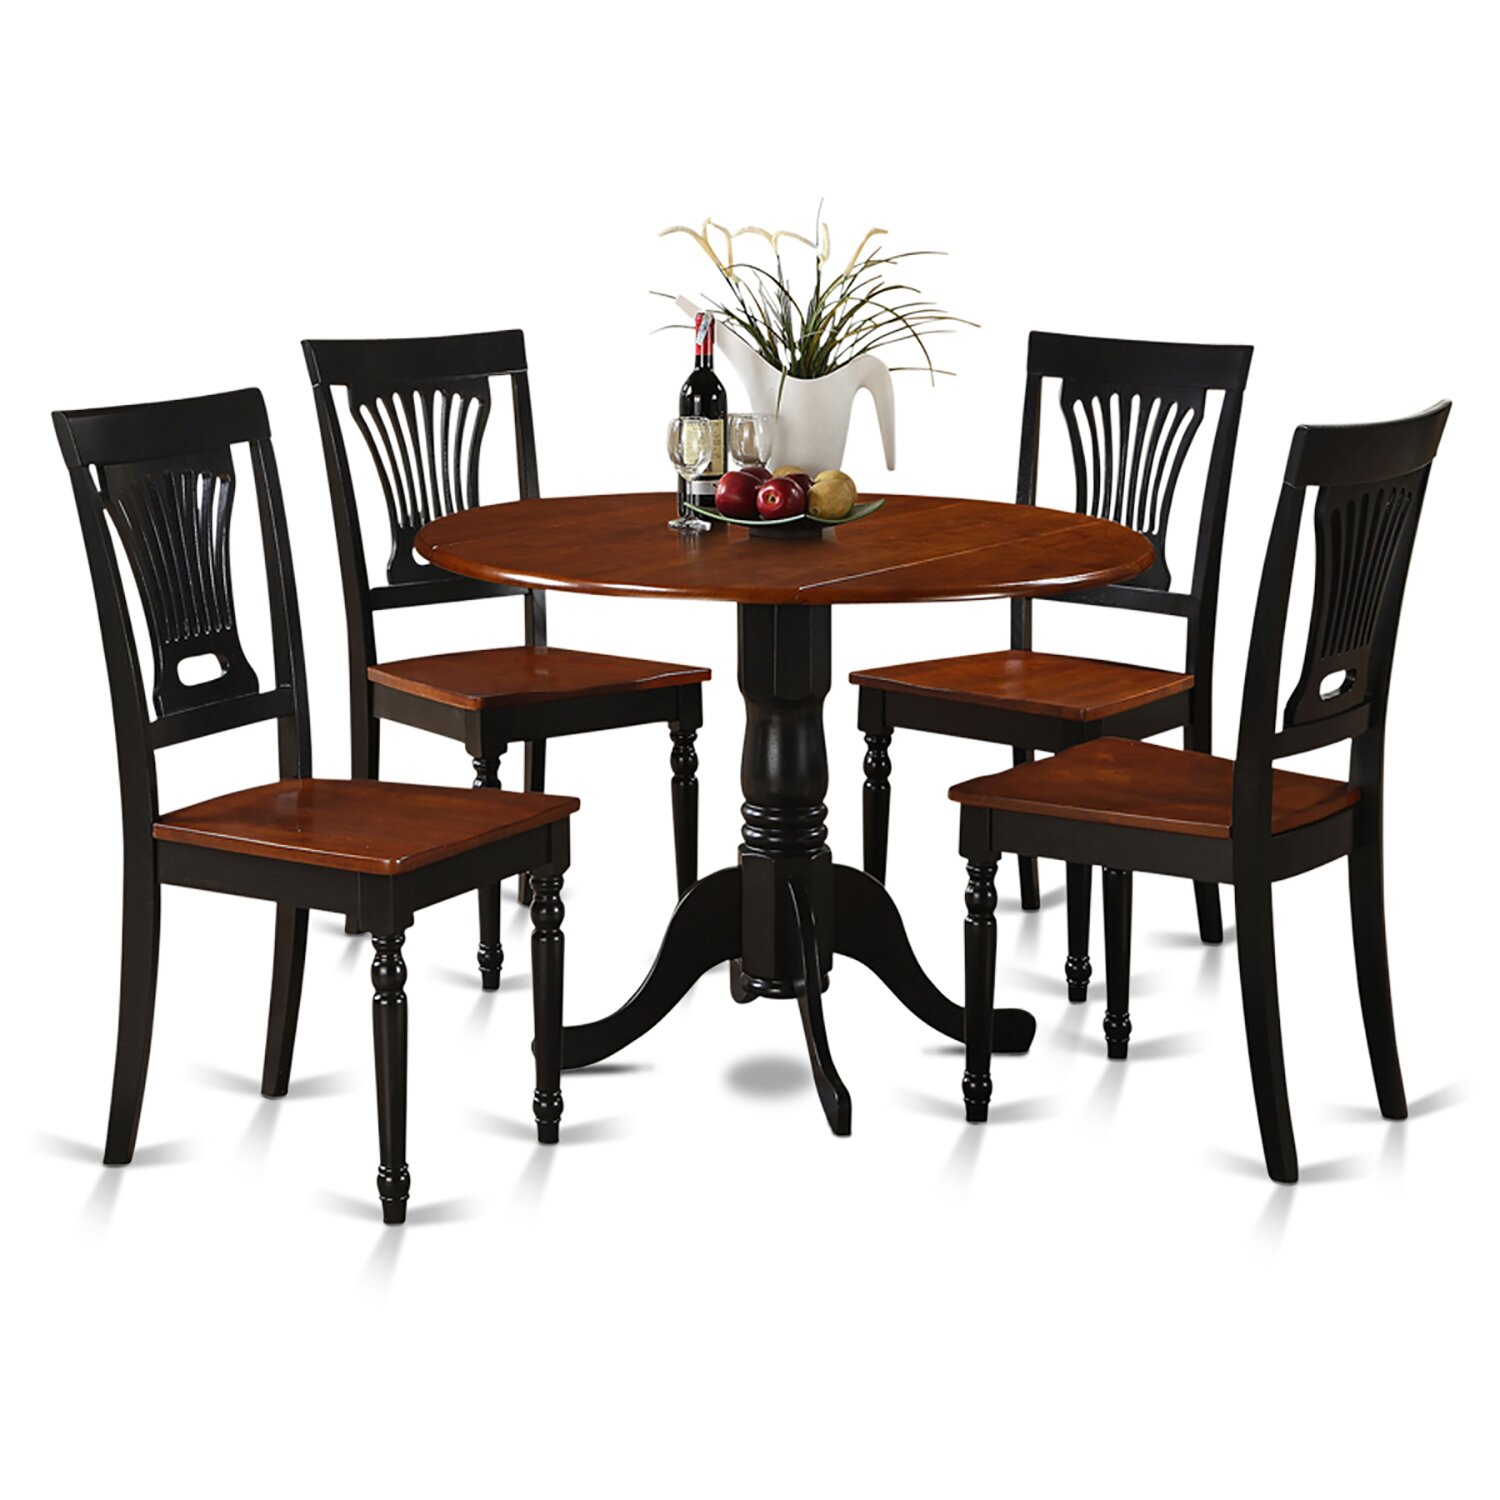 Wooden importers dublin 5 piece dining set reviews wayfair for Small table and stool set